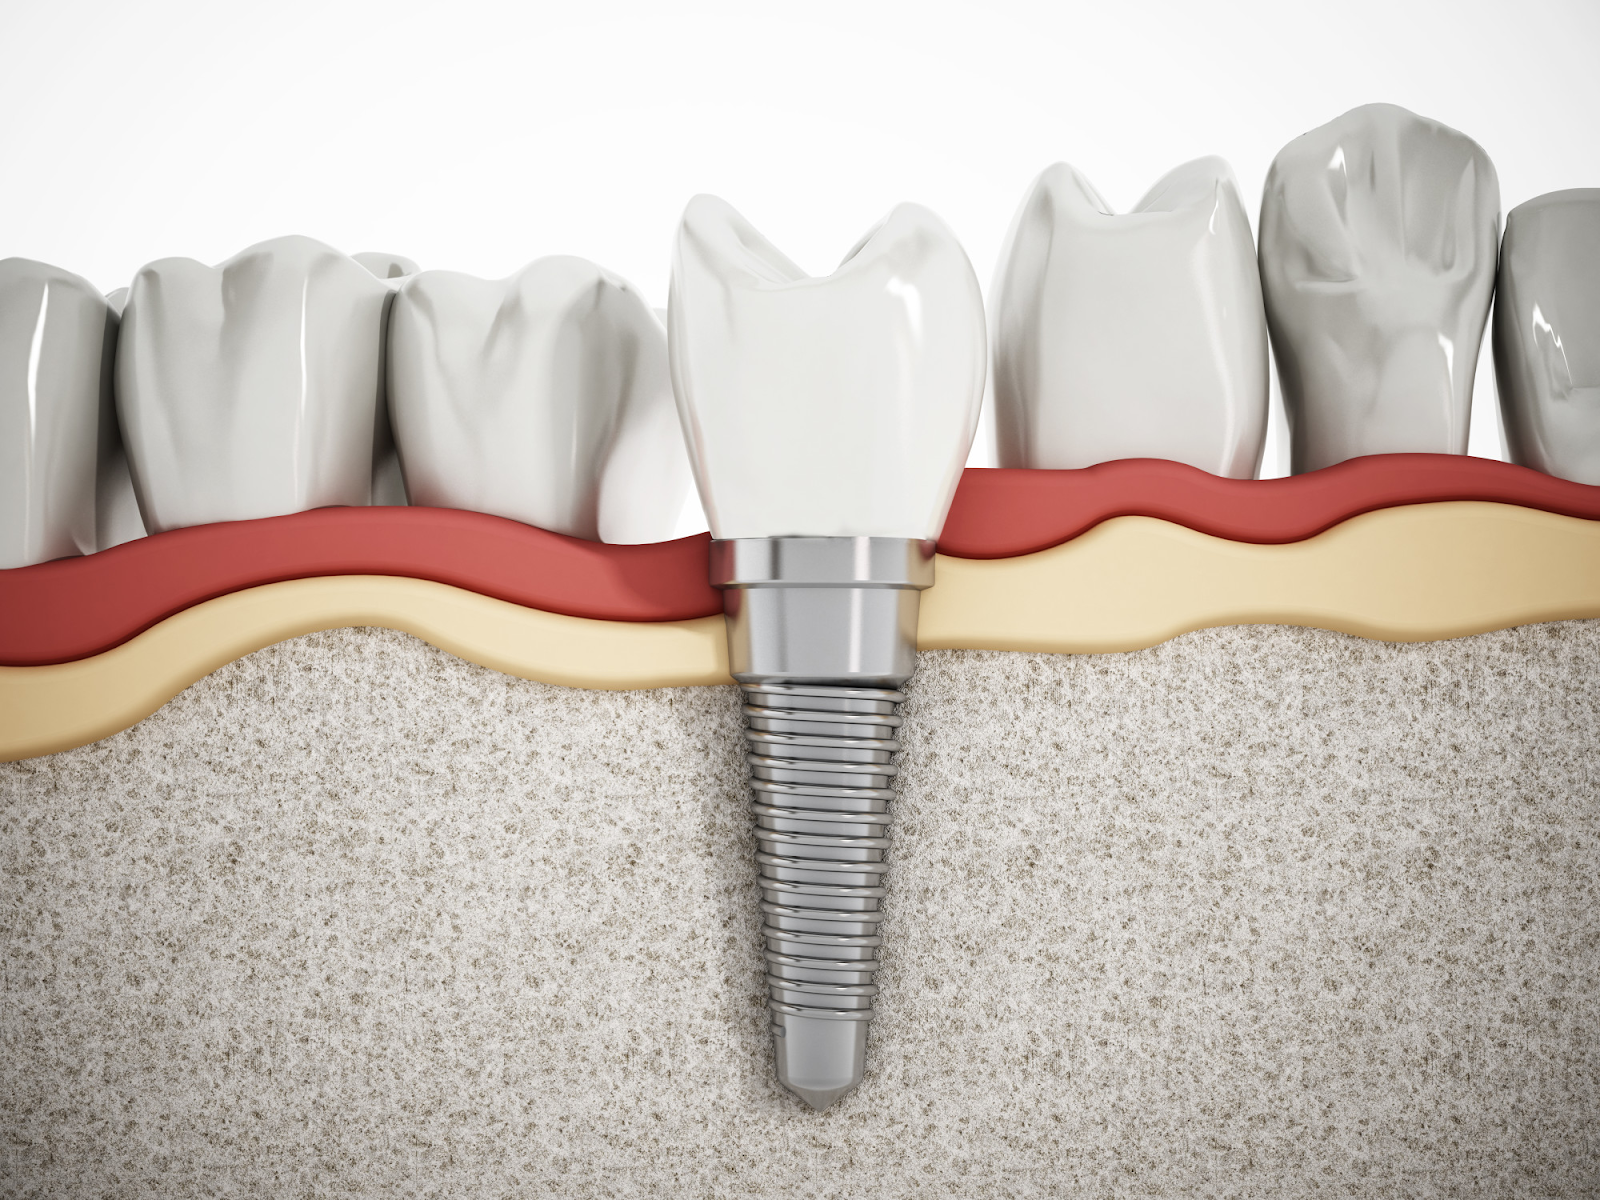 Dental Implants 101: What Is a Dental Abutment?